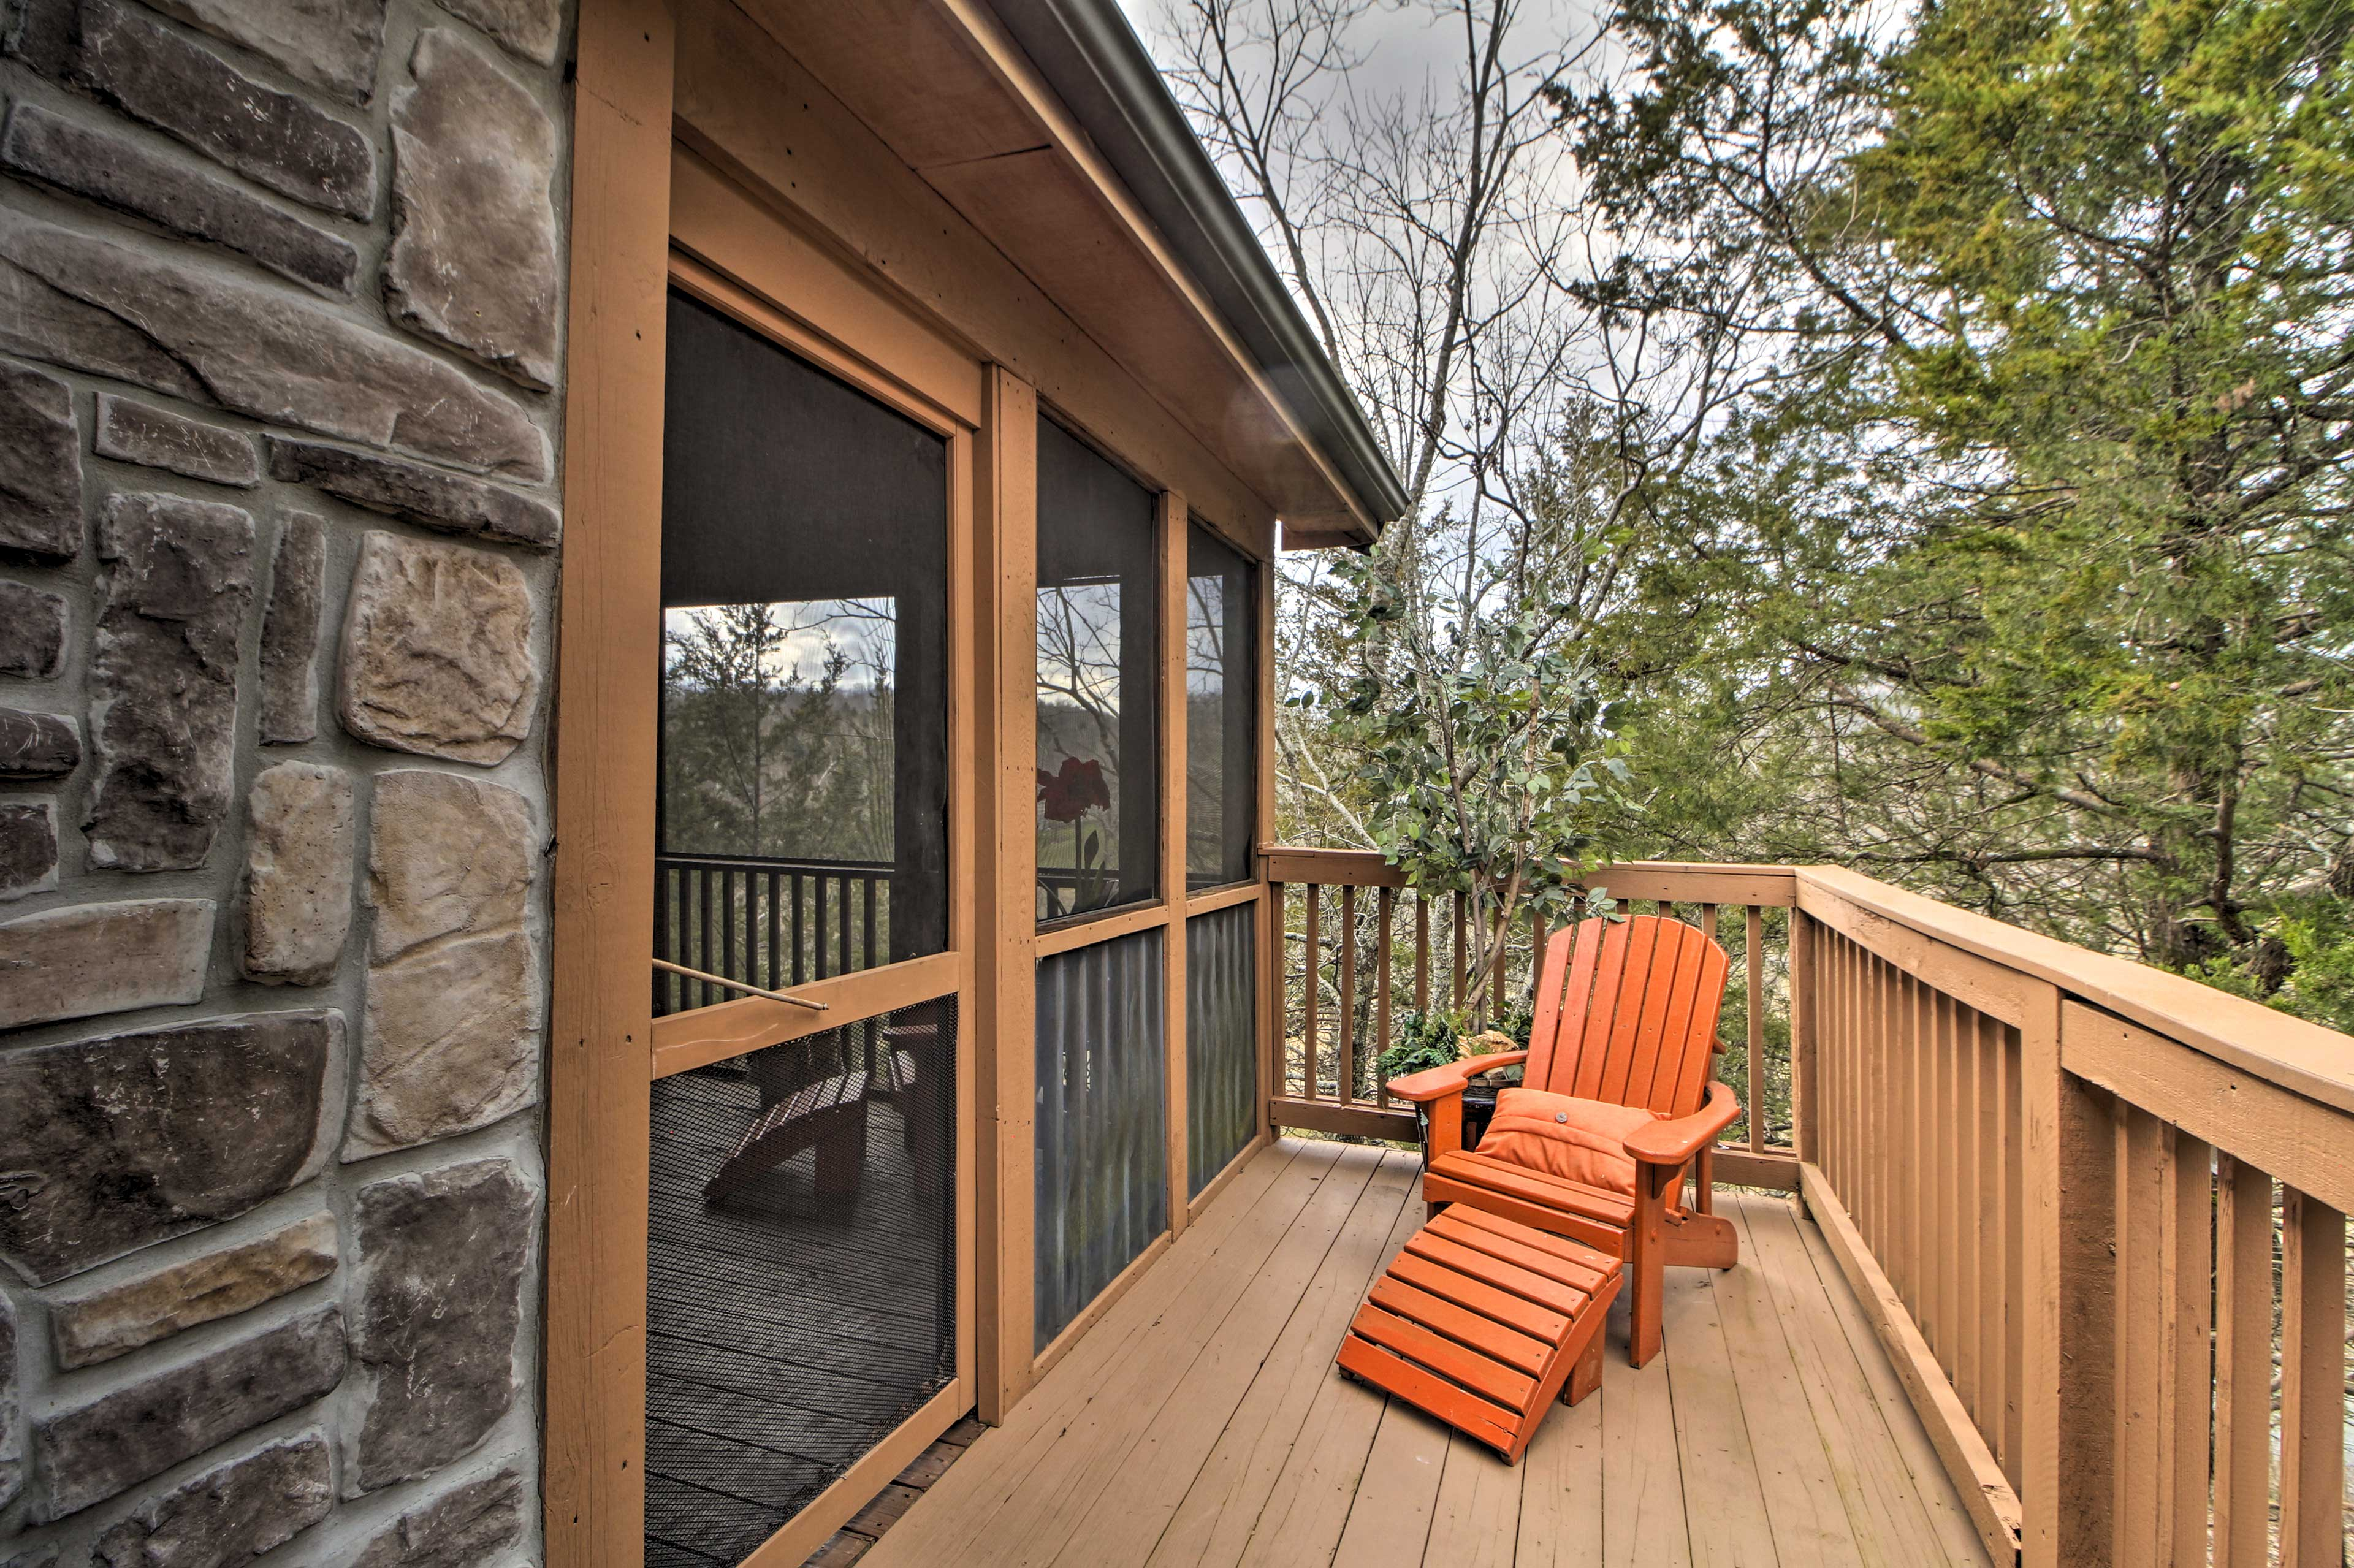 There are several outdoor spaces on the property.